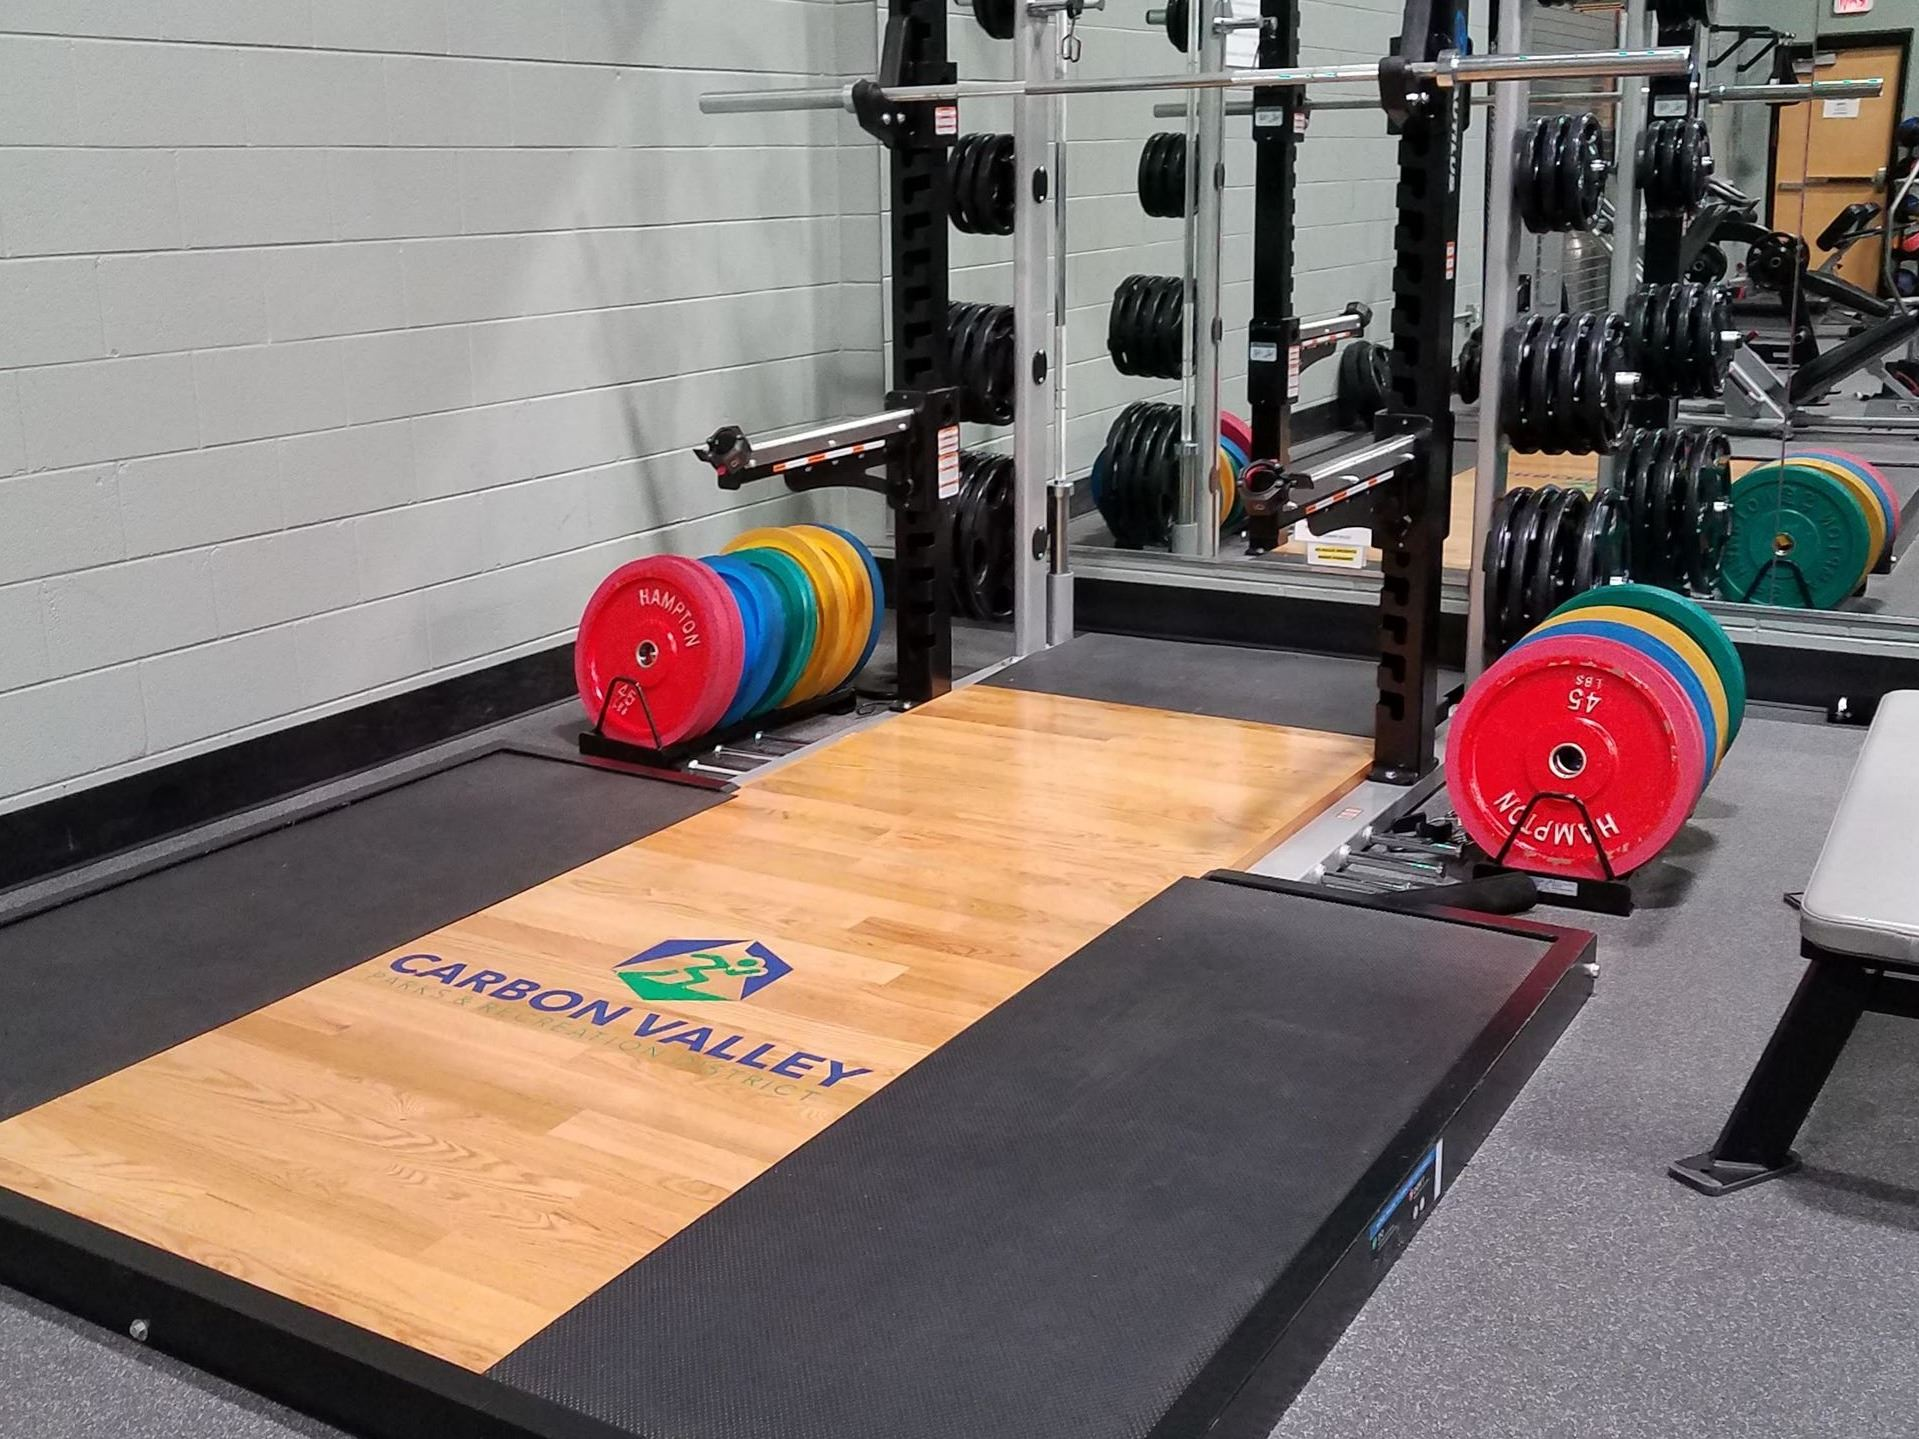 Wood floor platform with CVPRD logo painted on it with weight rack next to it.